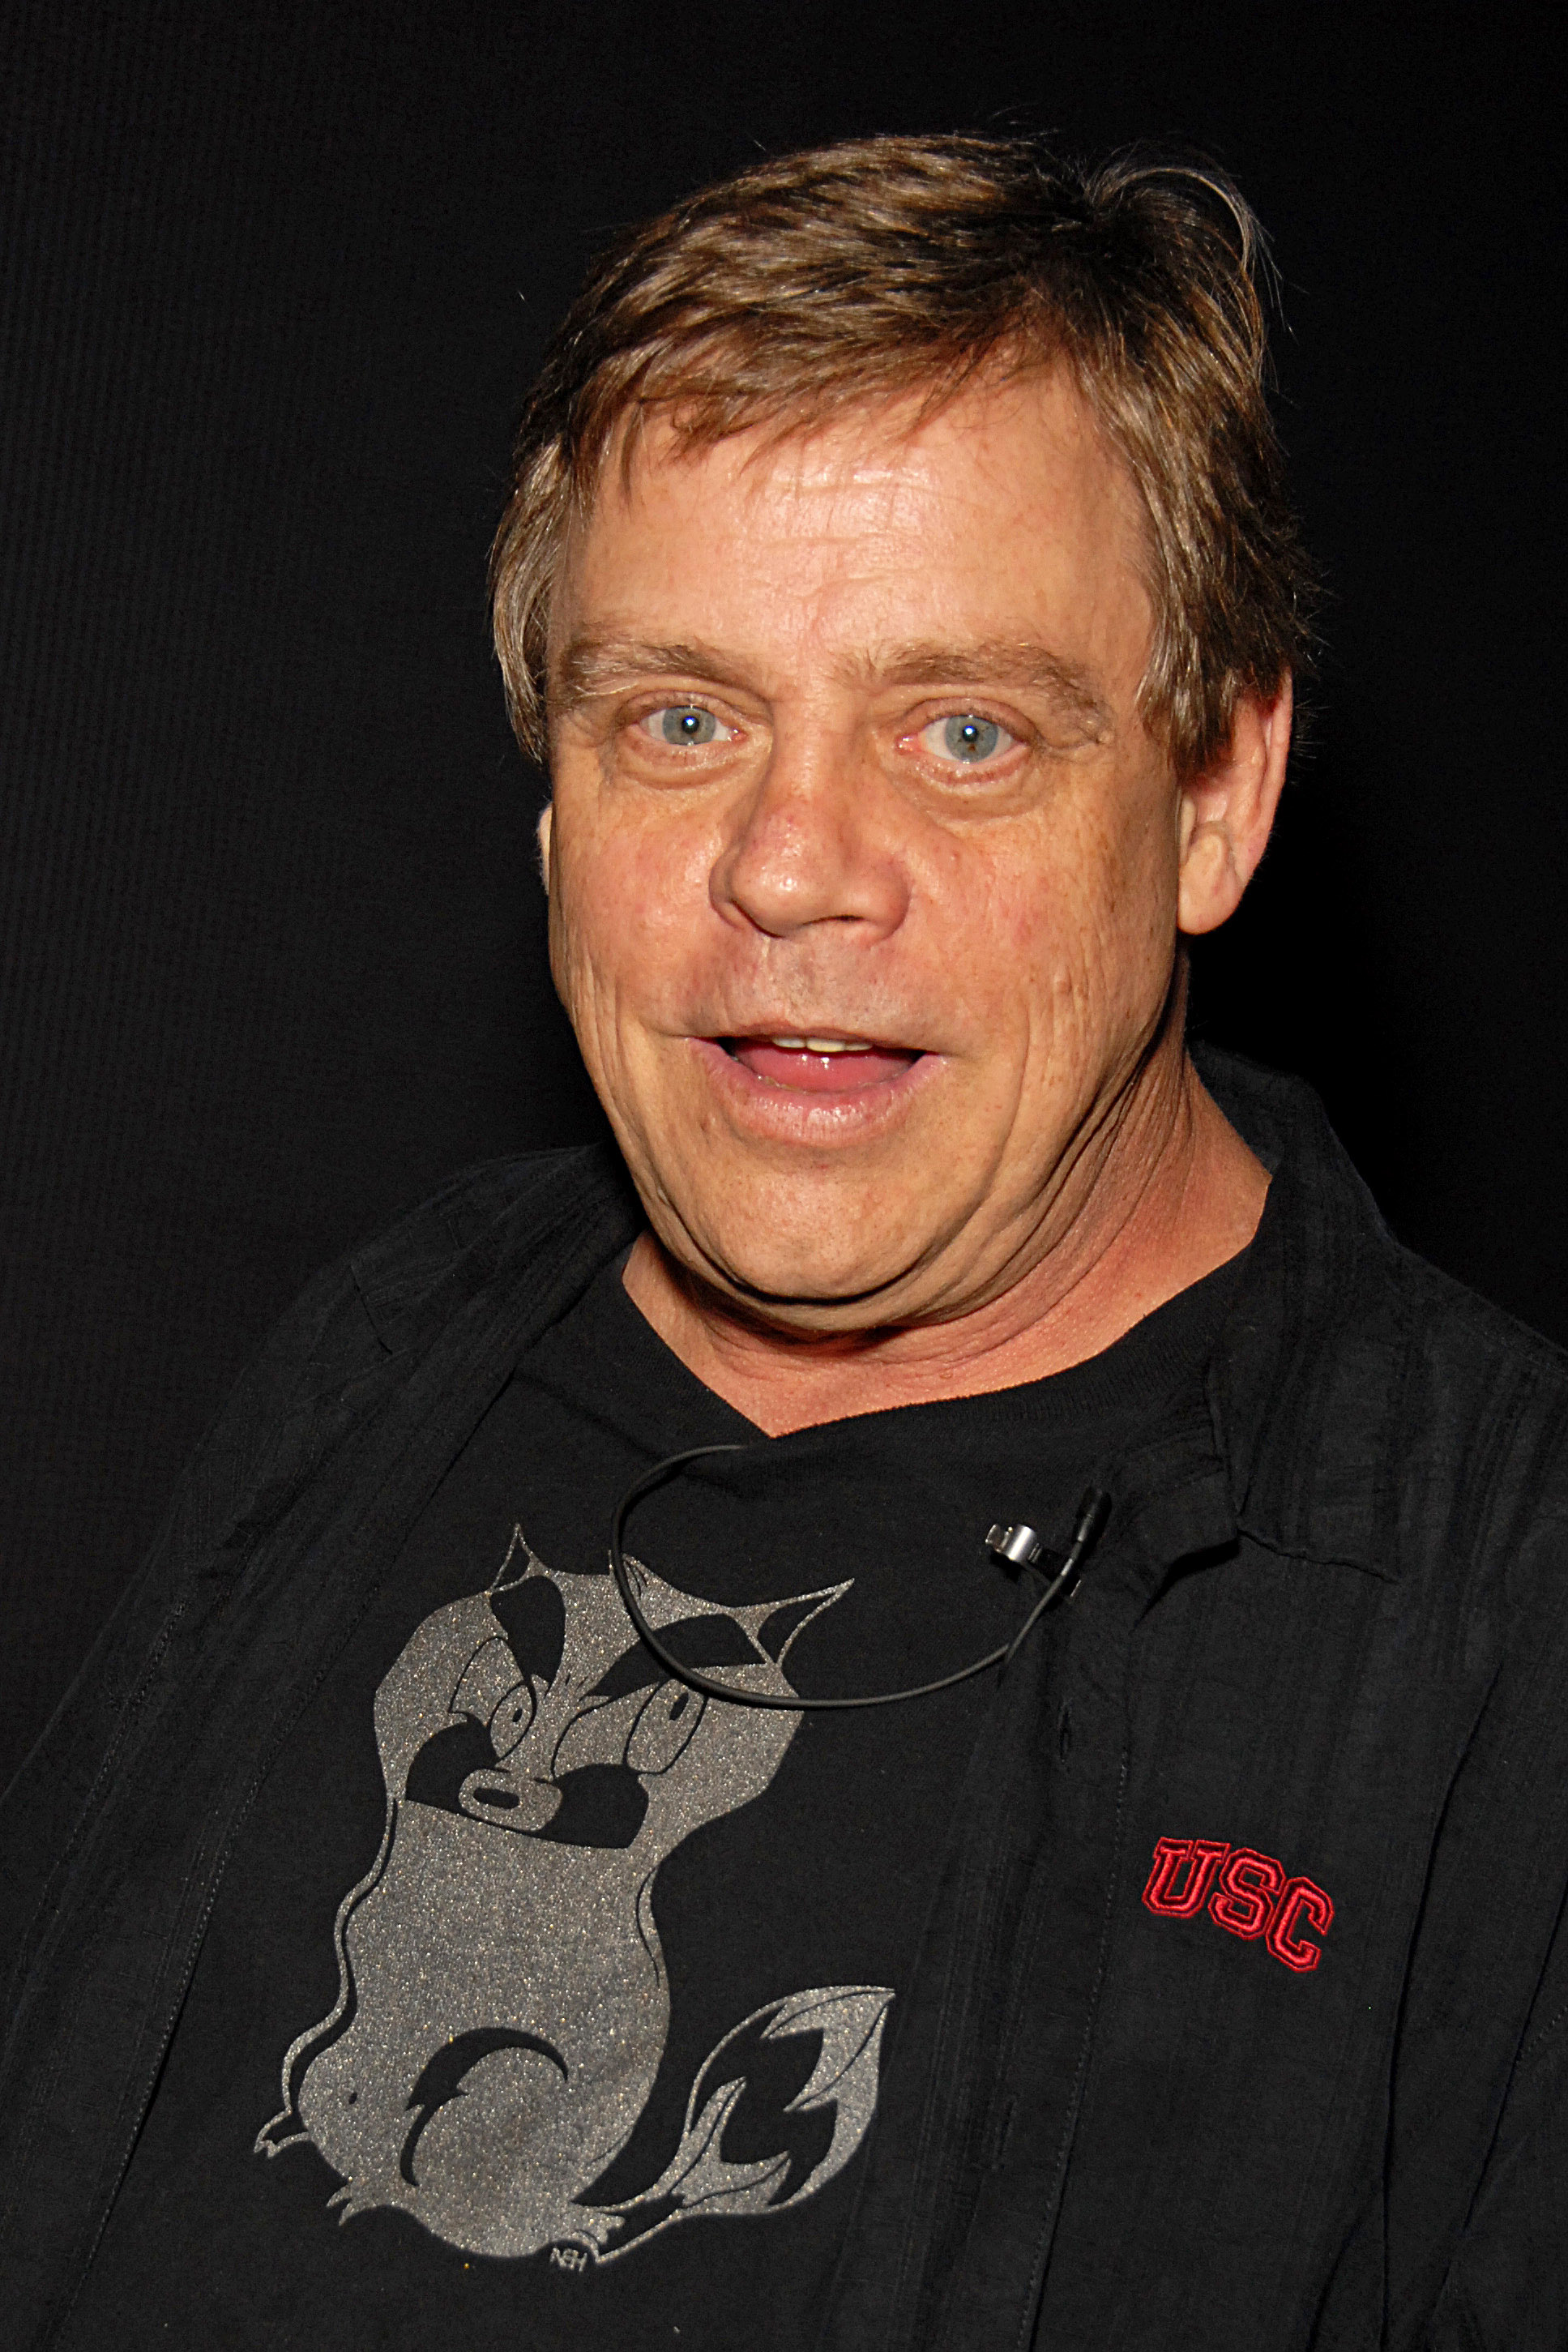 The 56-year old son of father William Thomas Hamill and mother Virginia Suzanne Hamill, 180 cm tall Mark Hamill in 2018 photo